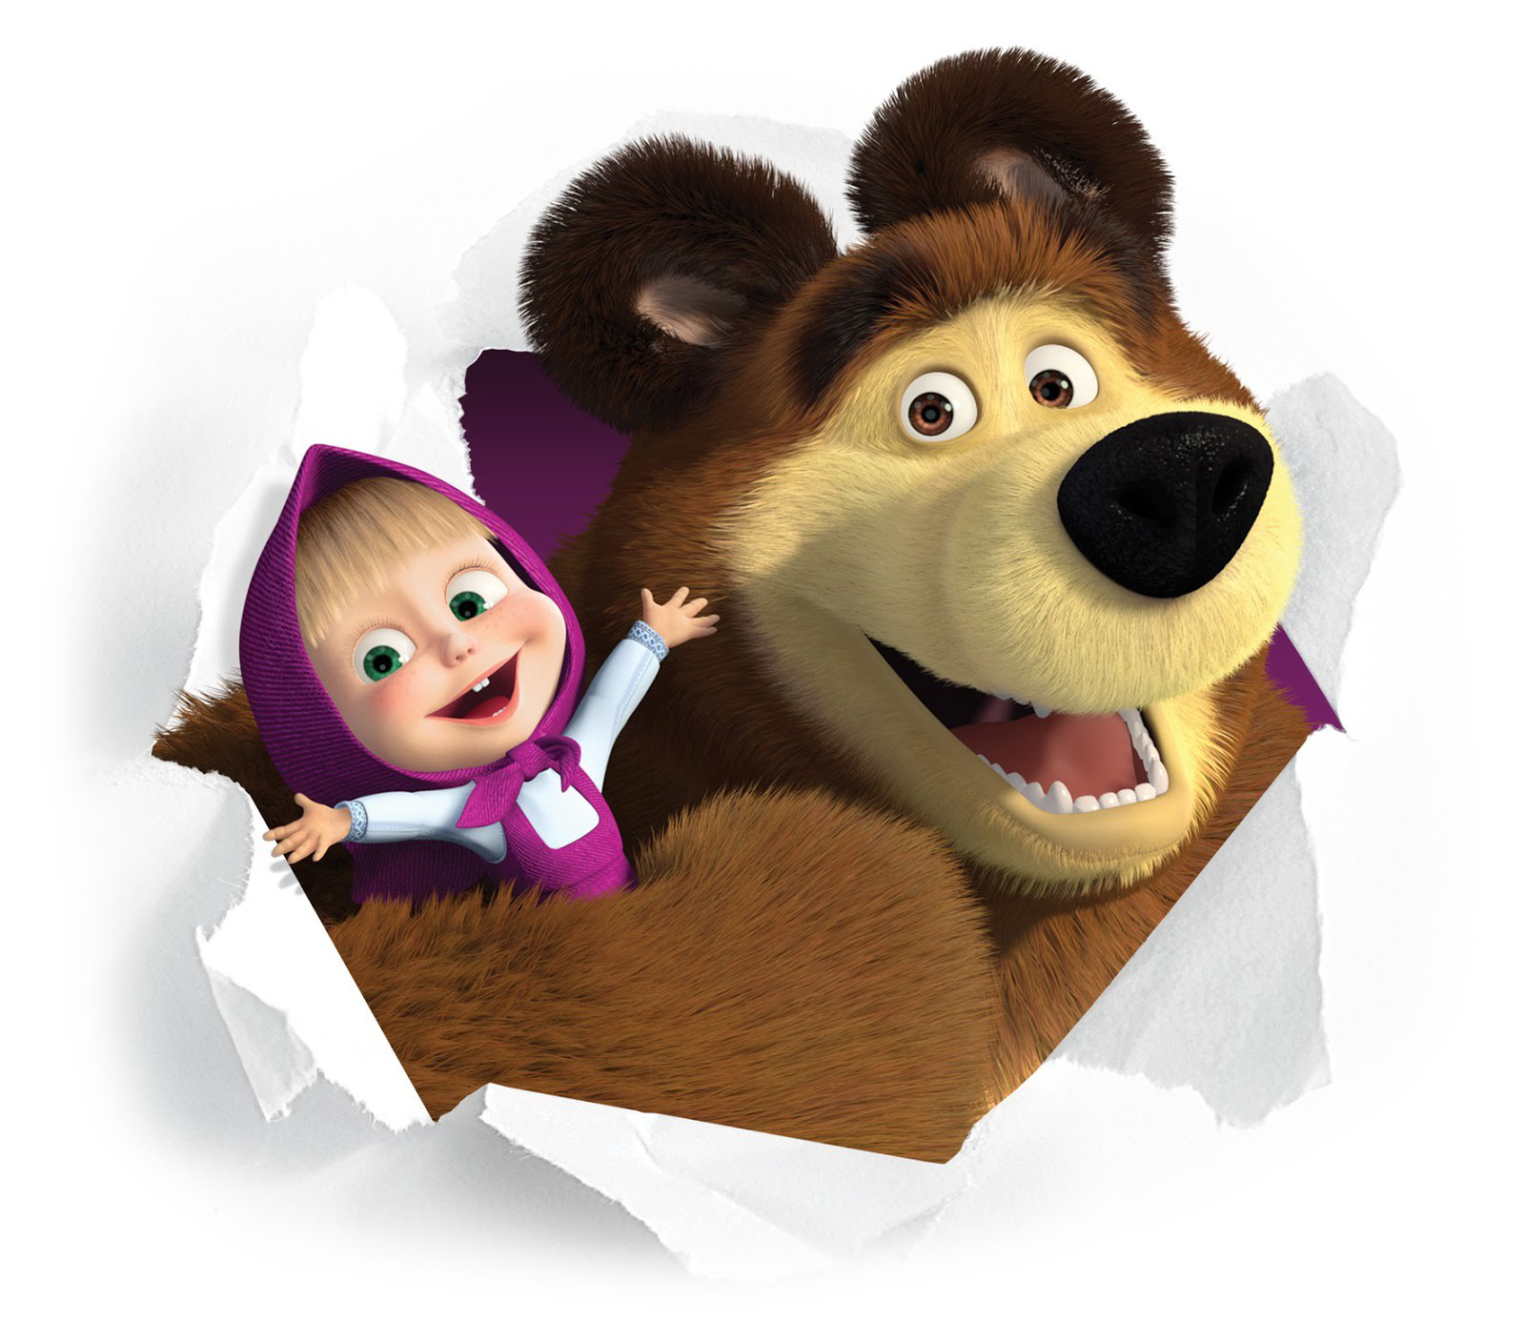 Masha And The Bear Free Images Png image #47258